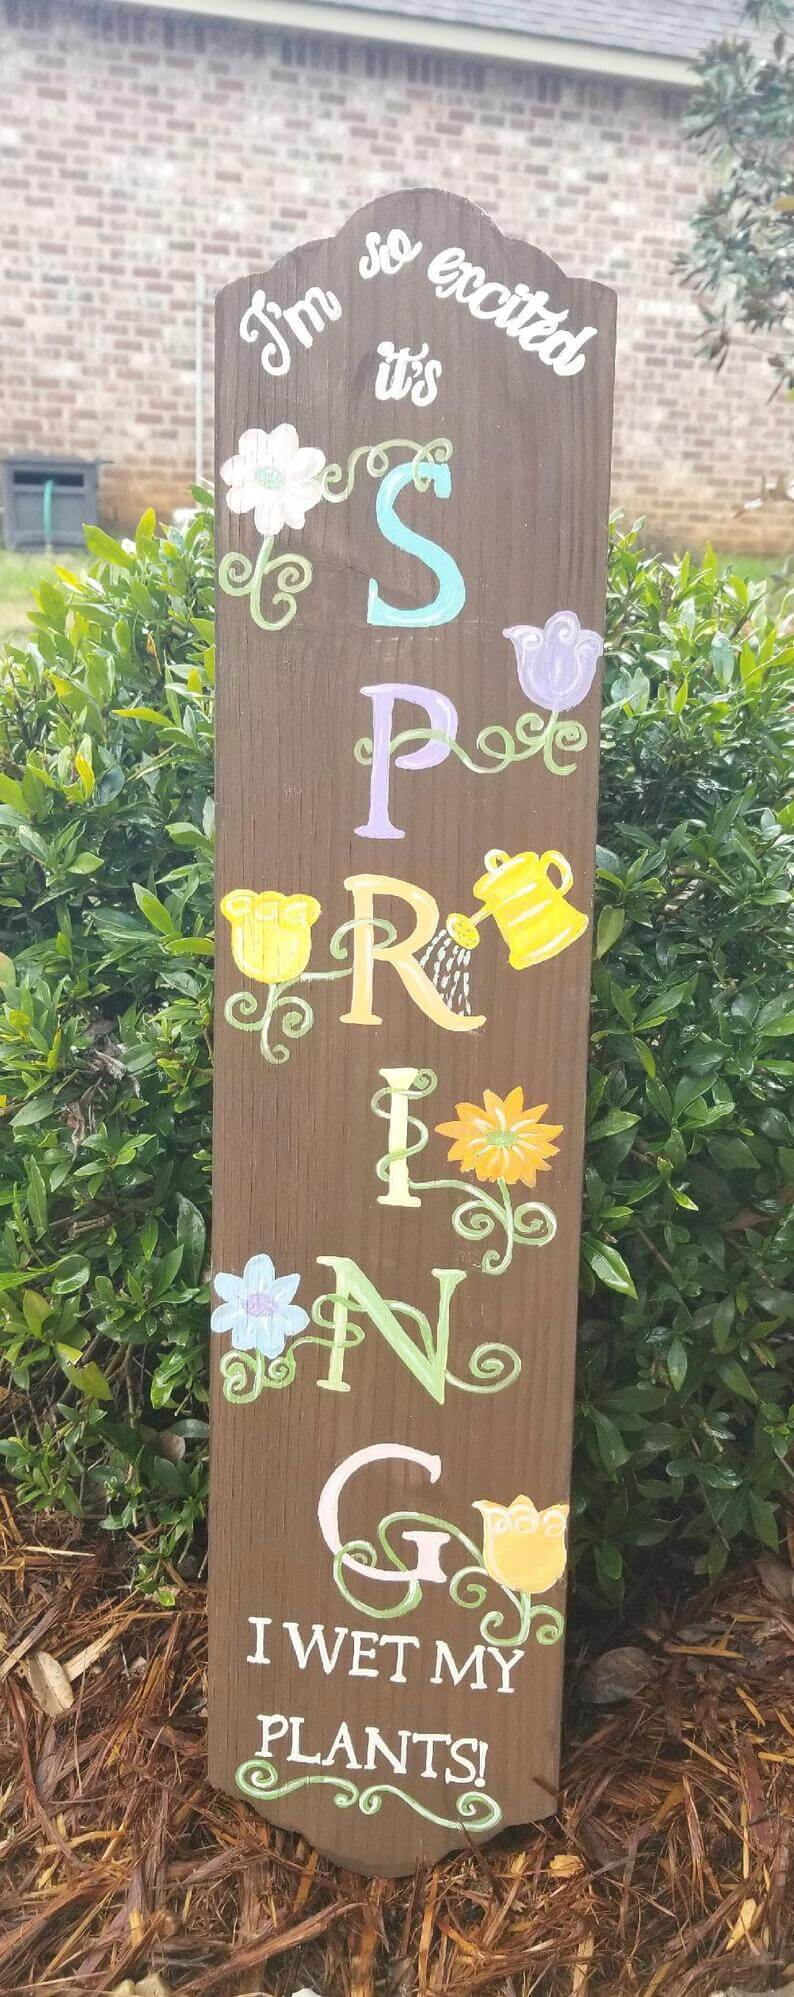 A Unique and Hilarious Spring Welcome Sign